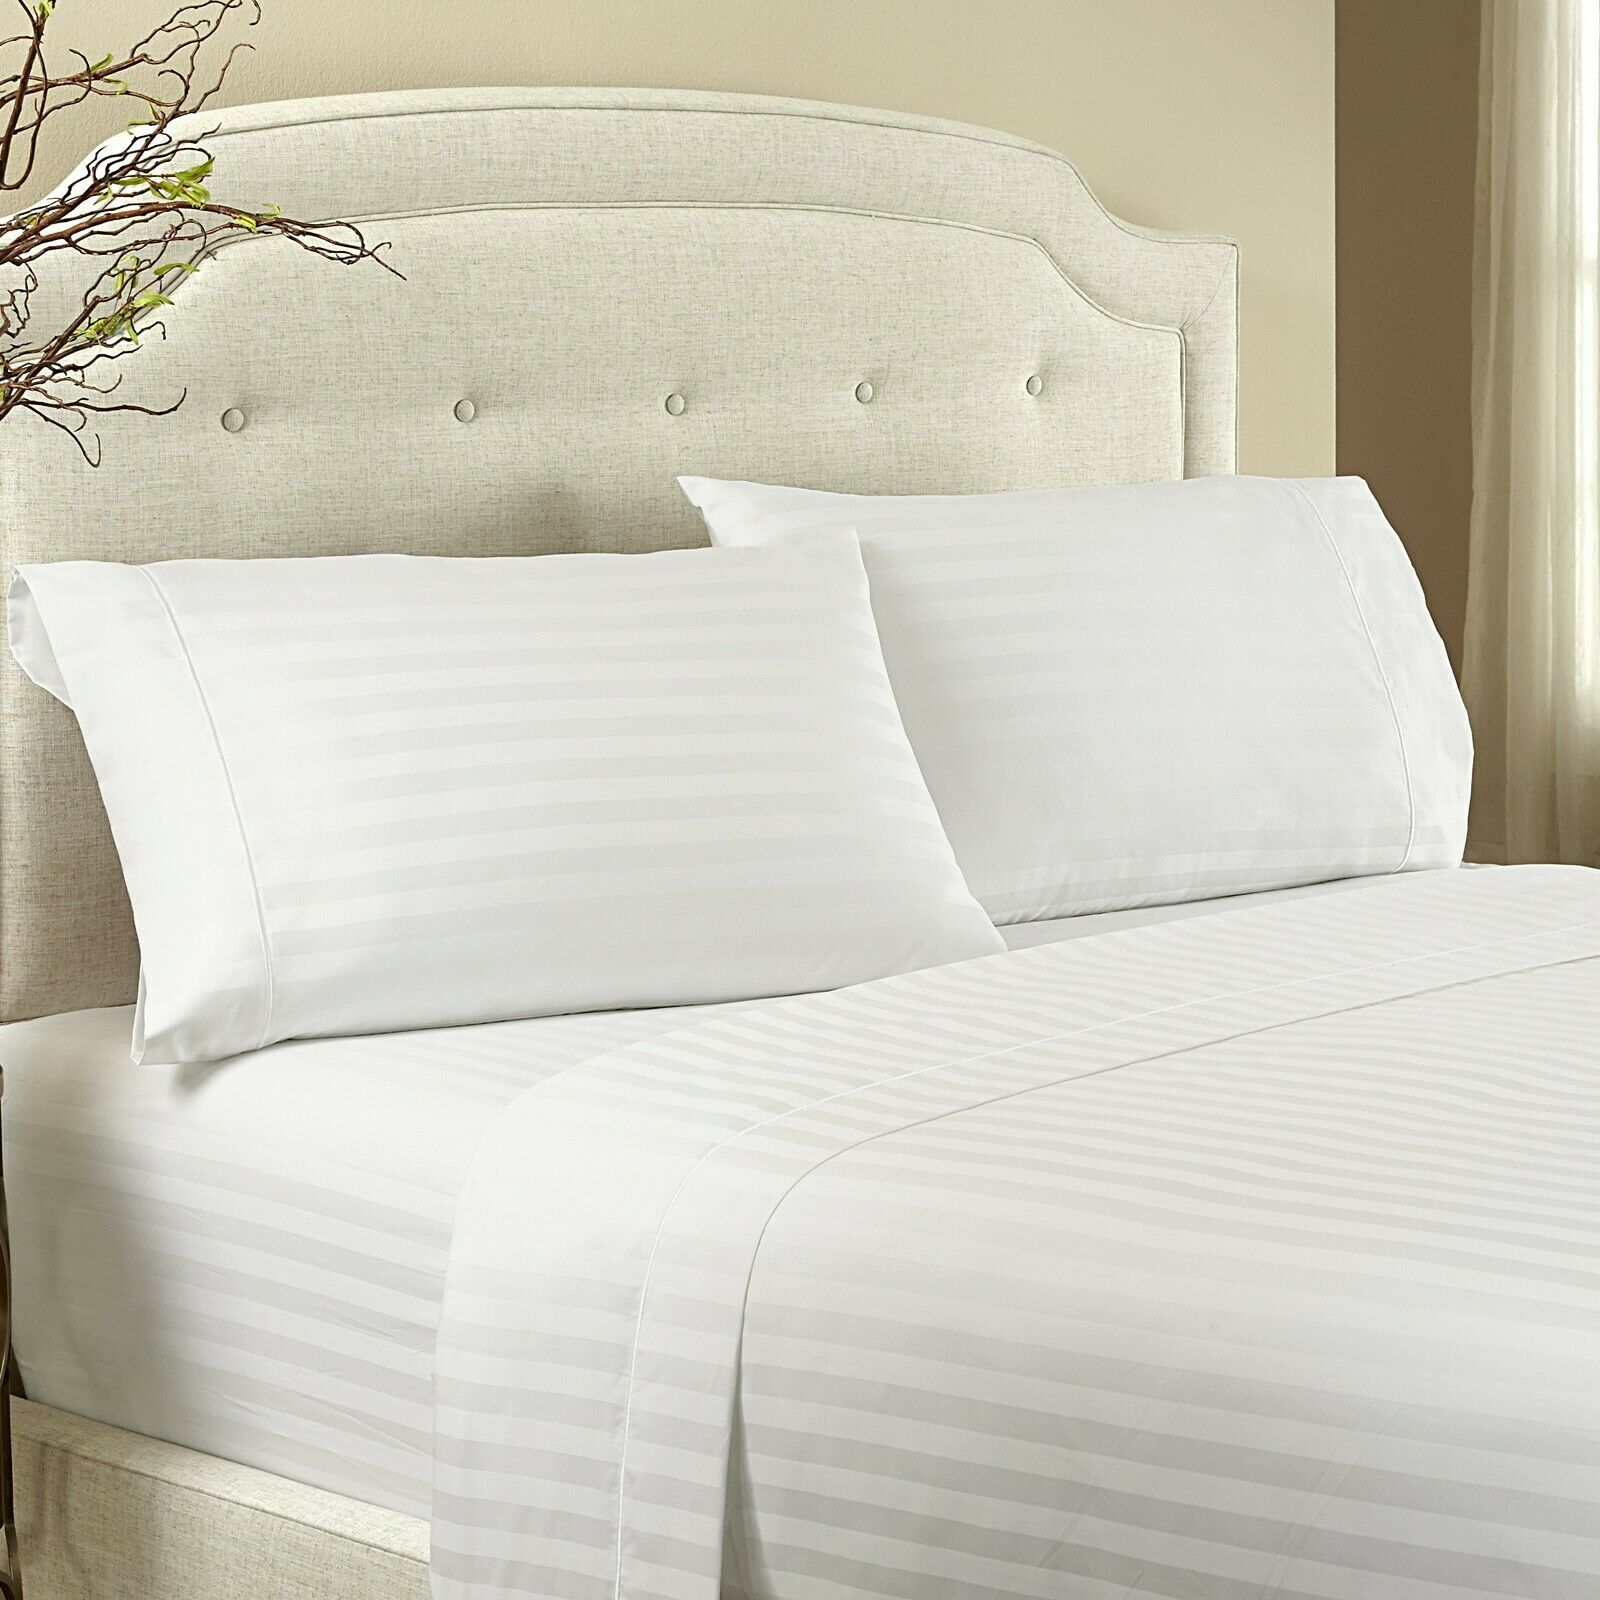 Damask White Stripe 3 PC 5 PC Duvet Set 1000 Thread Count Egyptian Cotton